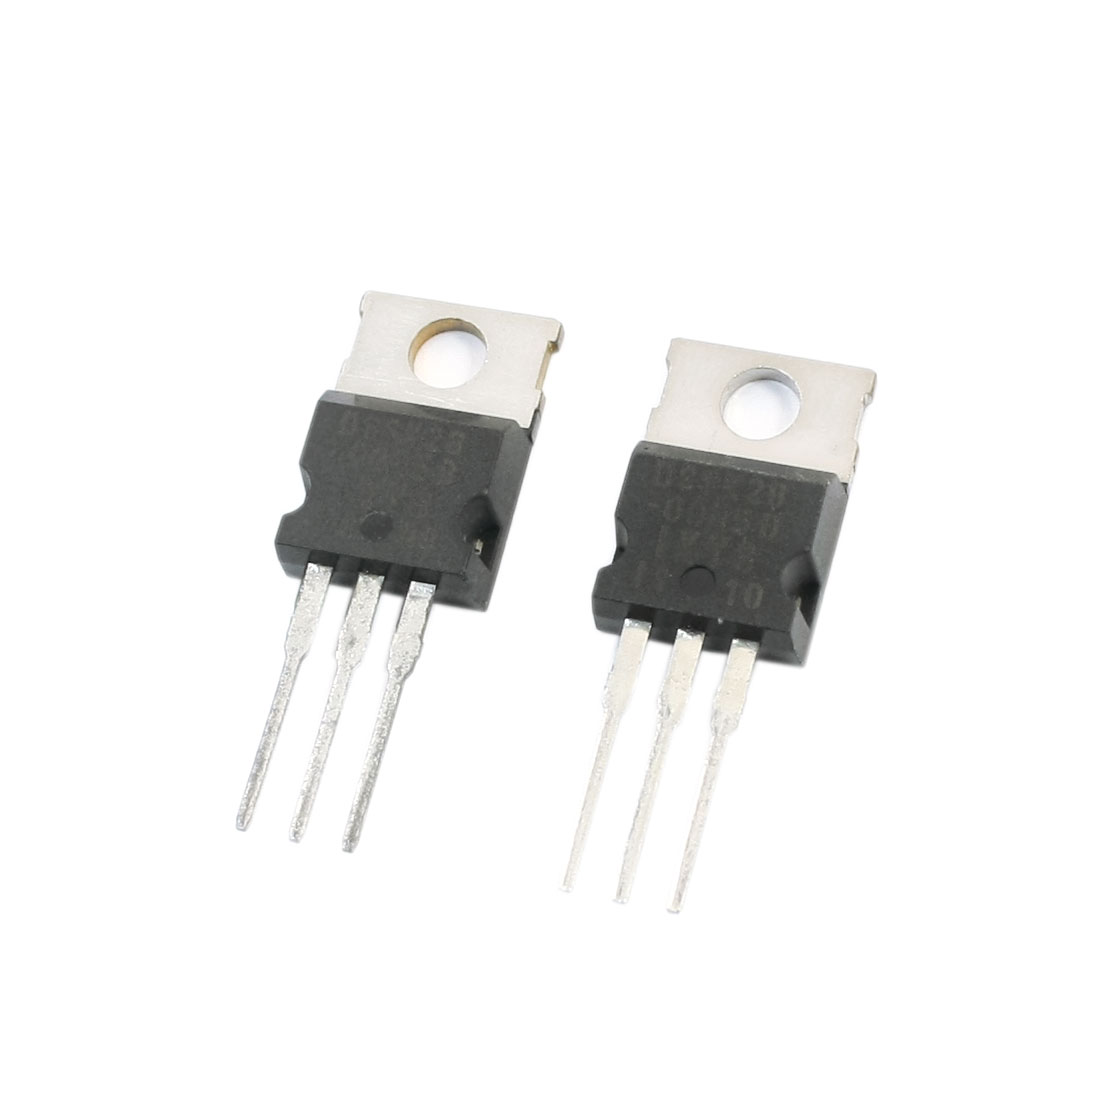 2Pcs DSSK28-0045B 28A 45V Electronic 3 Terminals Through Hole Mounting Dual High-Voltage Power Schottky Rectifier Diode